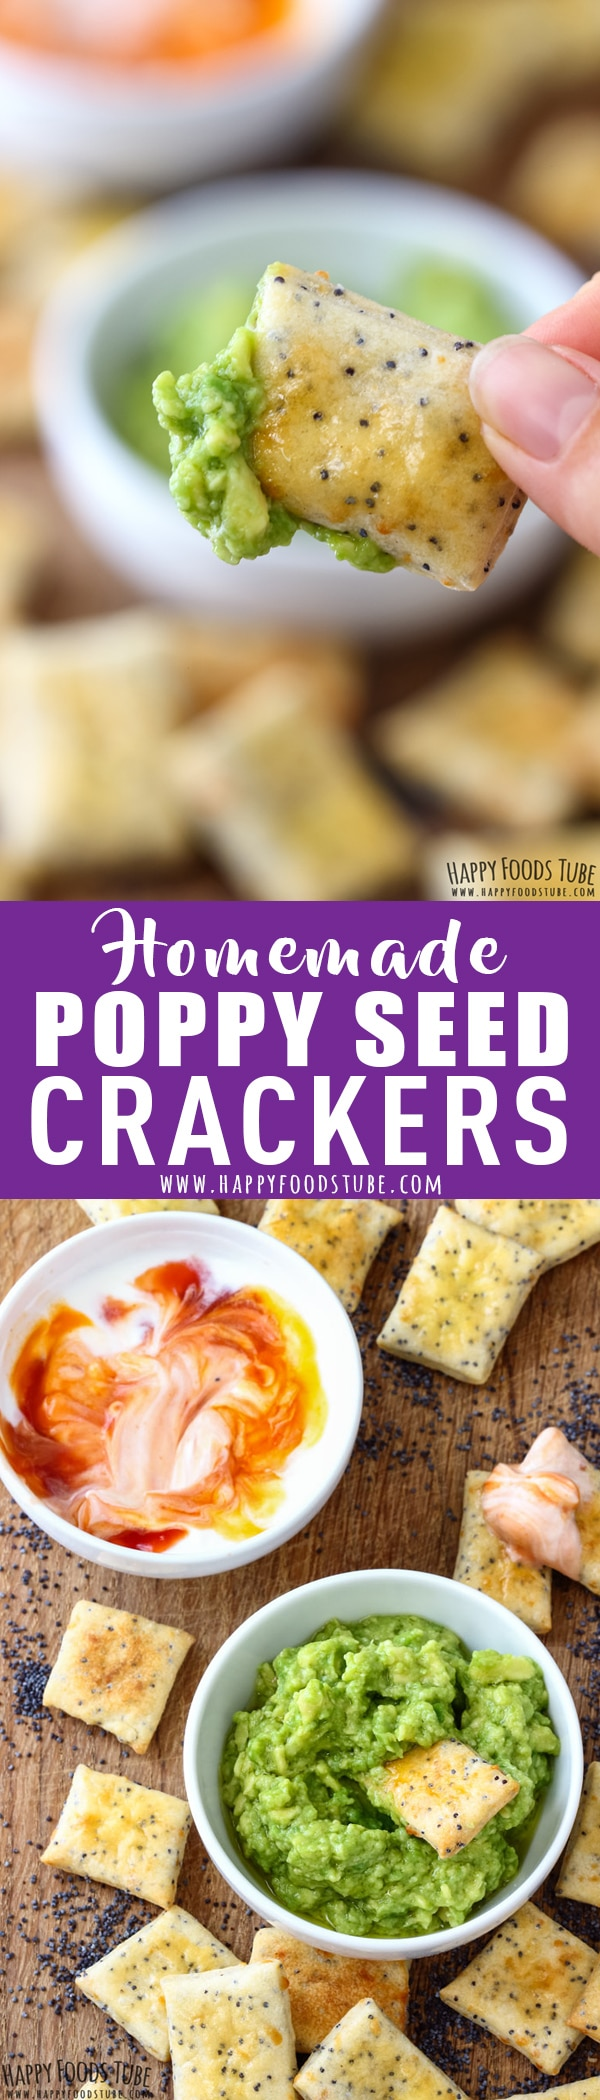 These Delicious homemade poppy seed crackers are a must-have on your party menu. Poppy seed crackers perfect for dips, cheese platters or snacking. How to make crackers at home. Best savory snacks recipe. #homemade #crackers #recipe #cheese #baking #poppyseed #easy #howtomake #savory #snacks